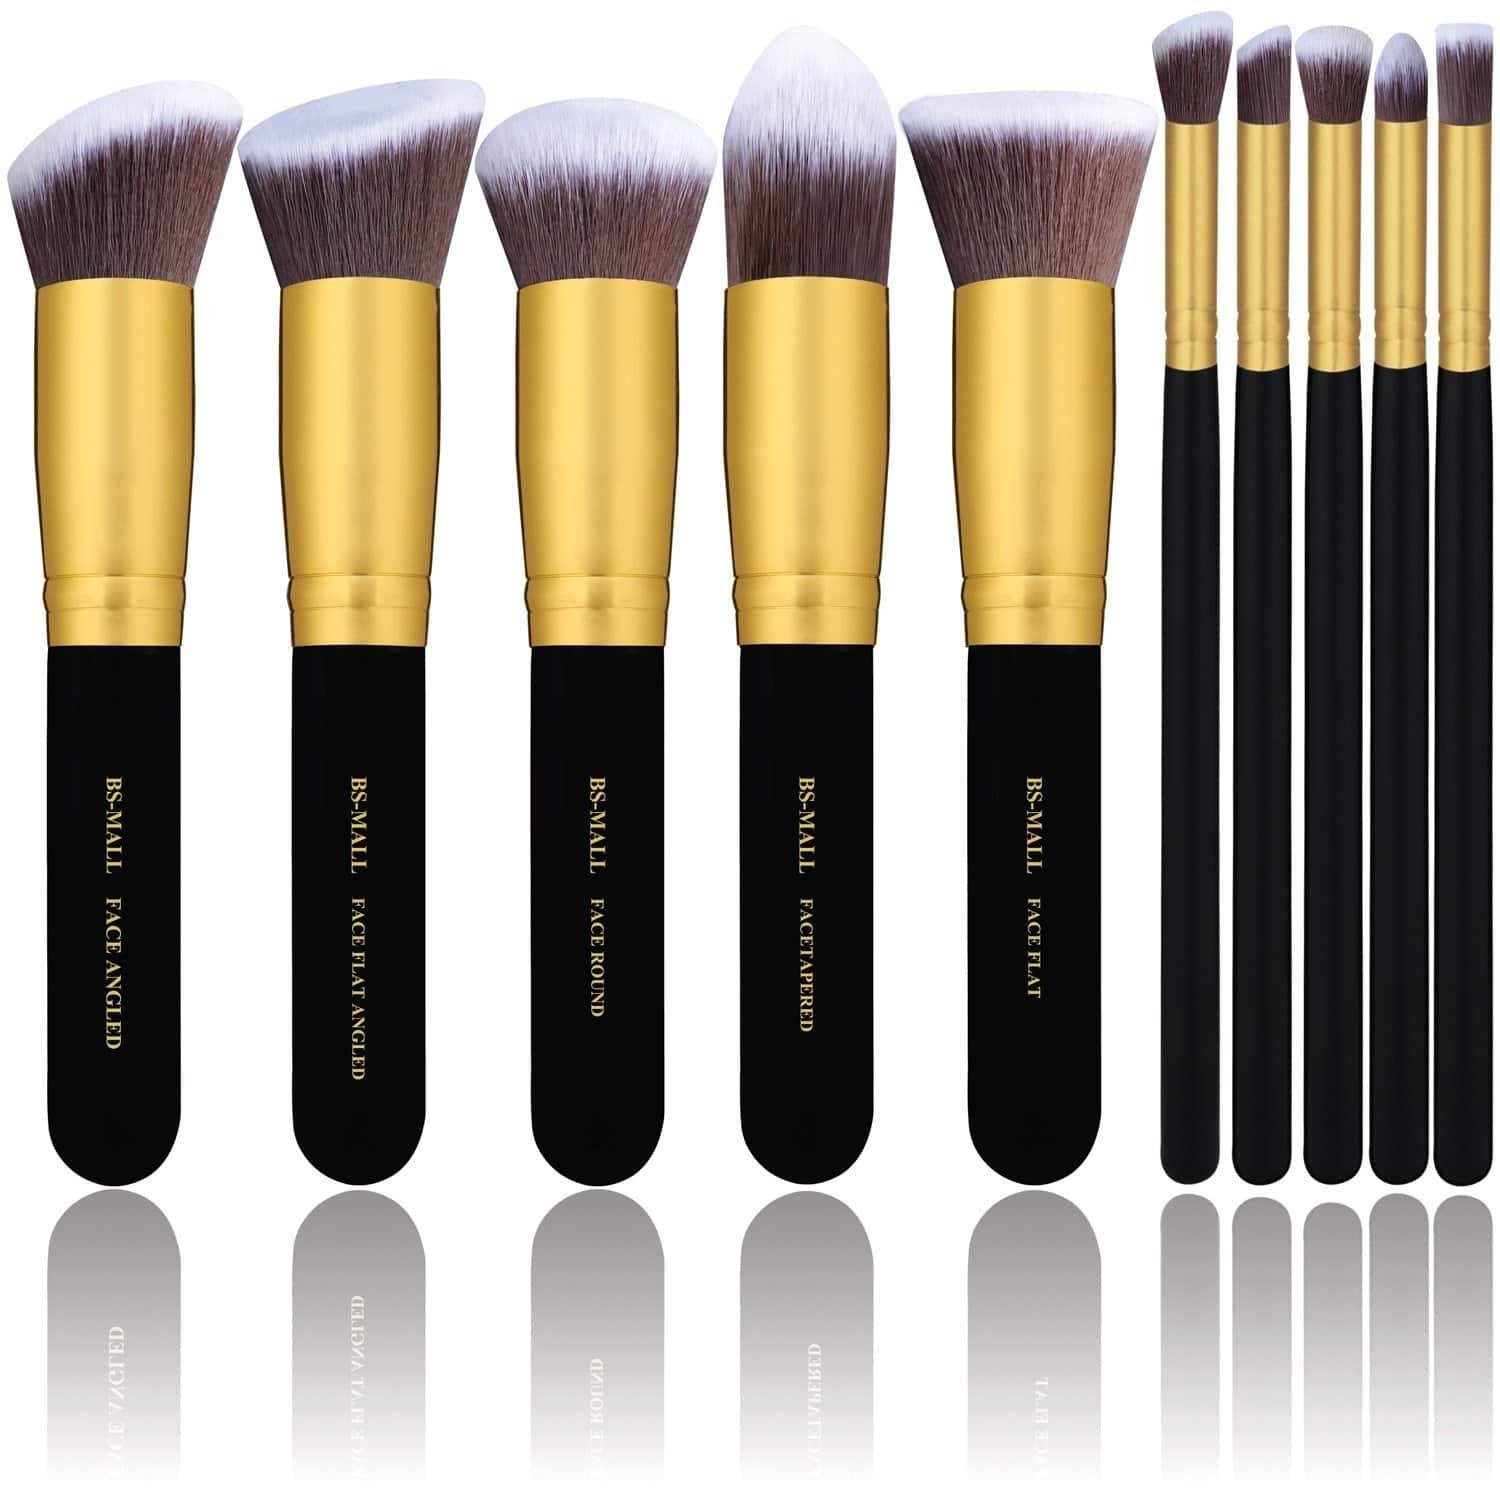 10 Piece Kabuki Cosmetics Makeup Brush Kit $5.99 AC Free Ship With Amazon Prime